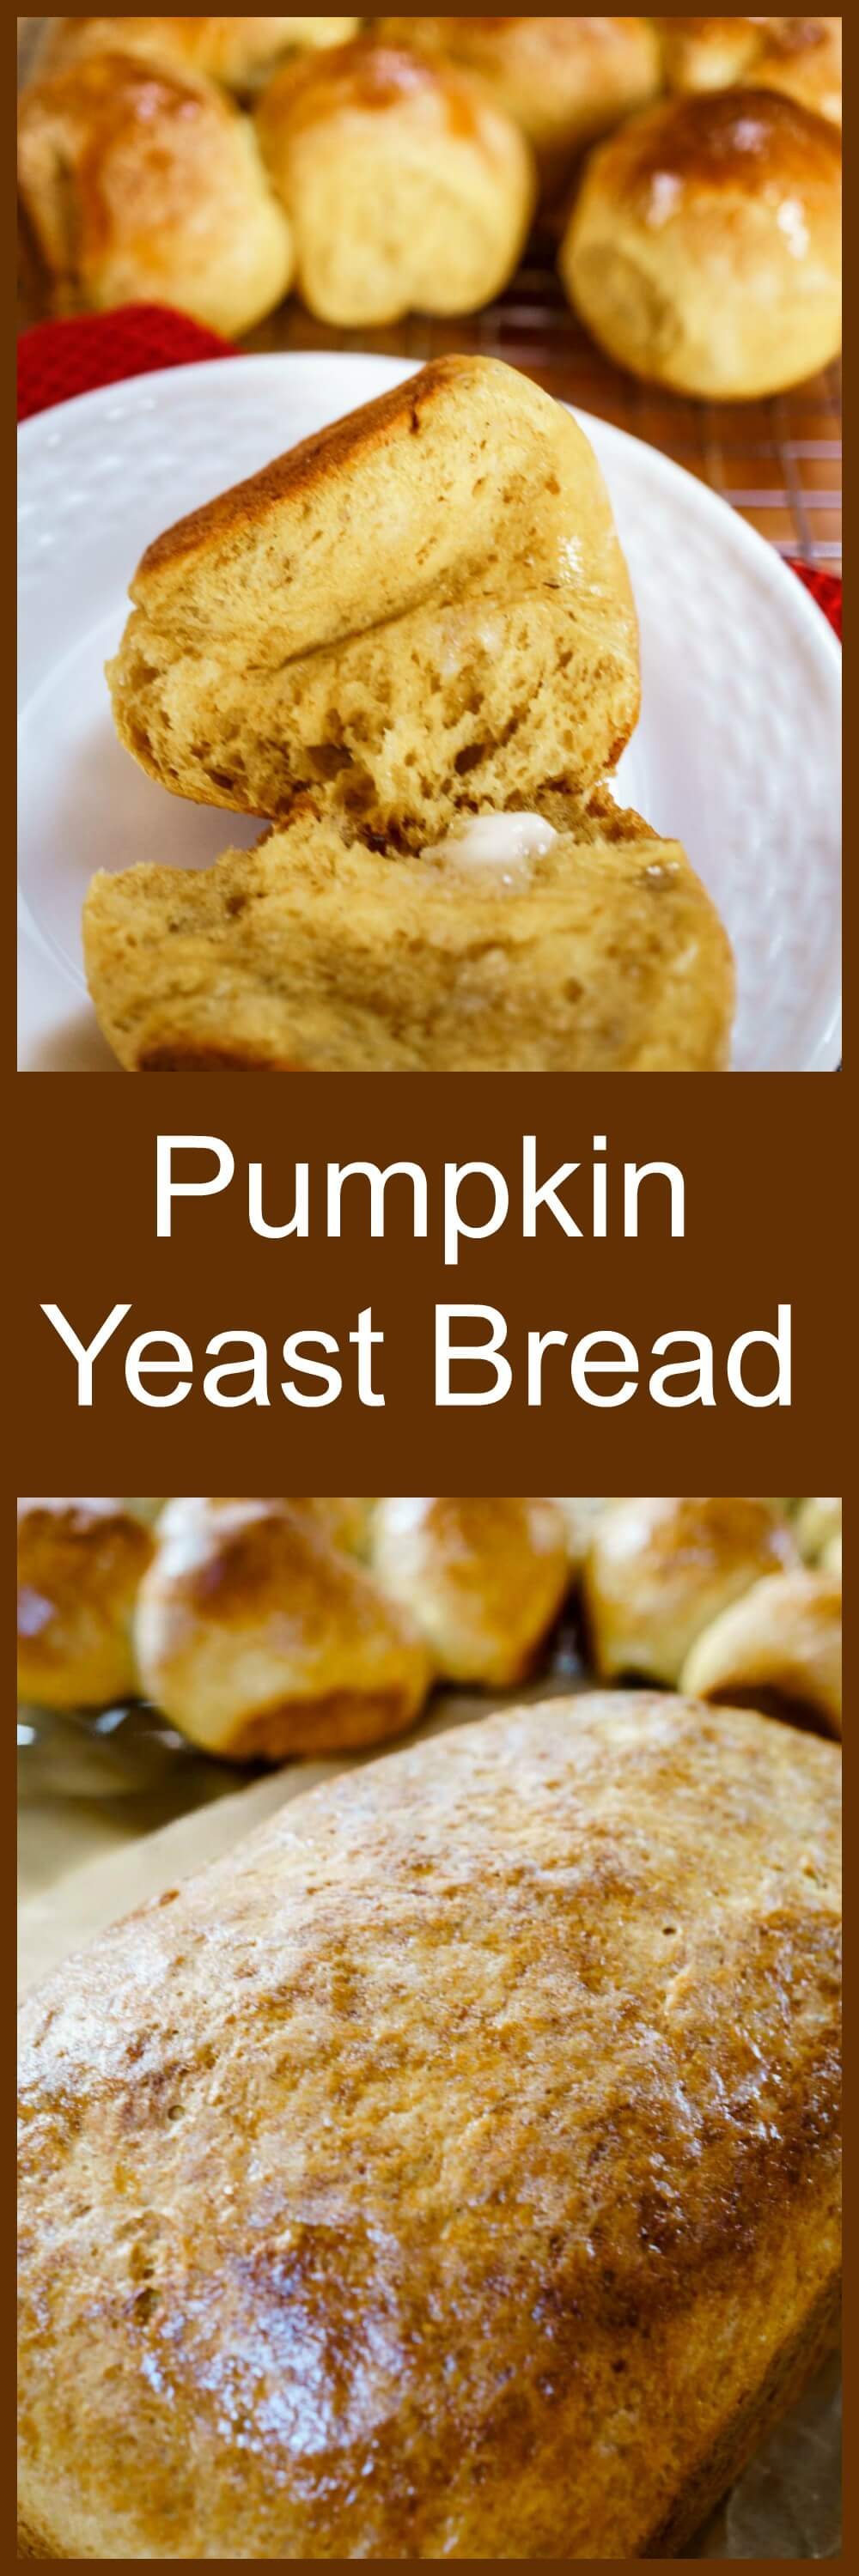 Light and delicious Pumpkin Yeast Bread makes a beautiful addition to any meal. This recipe is easy, versatile, and perfect for your holiday table. You can make delicious loaves, rolls or both! #Recipe #BreadBakers #Homemade